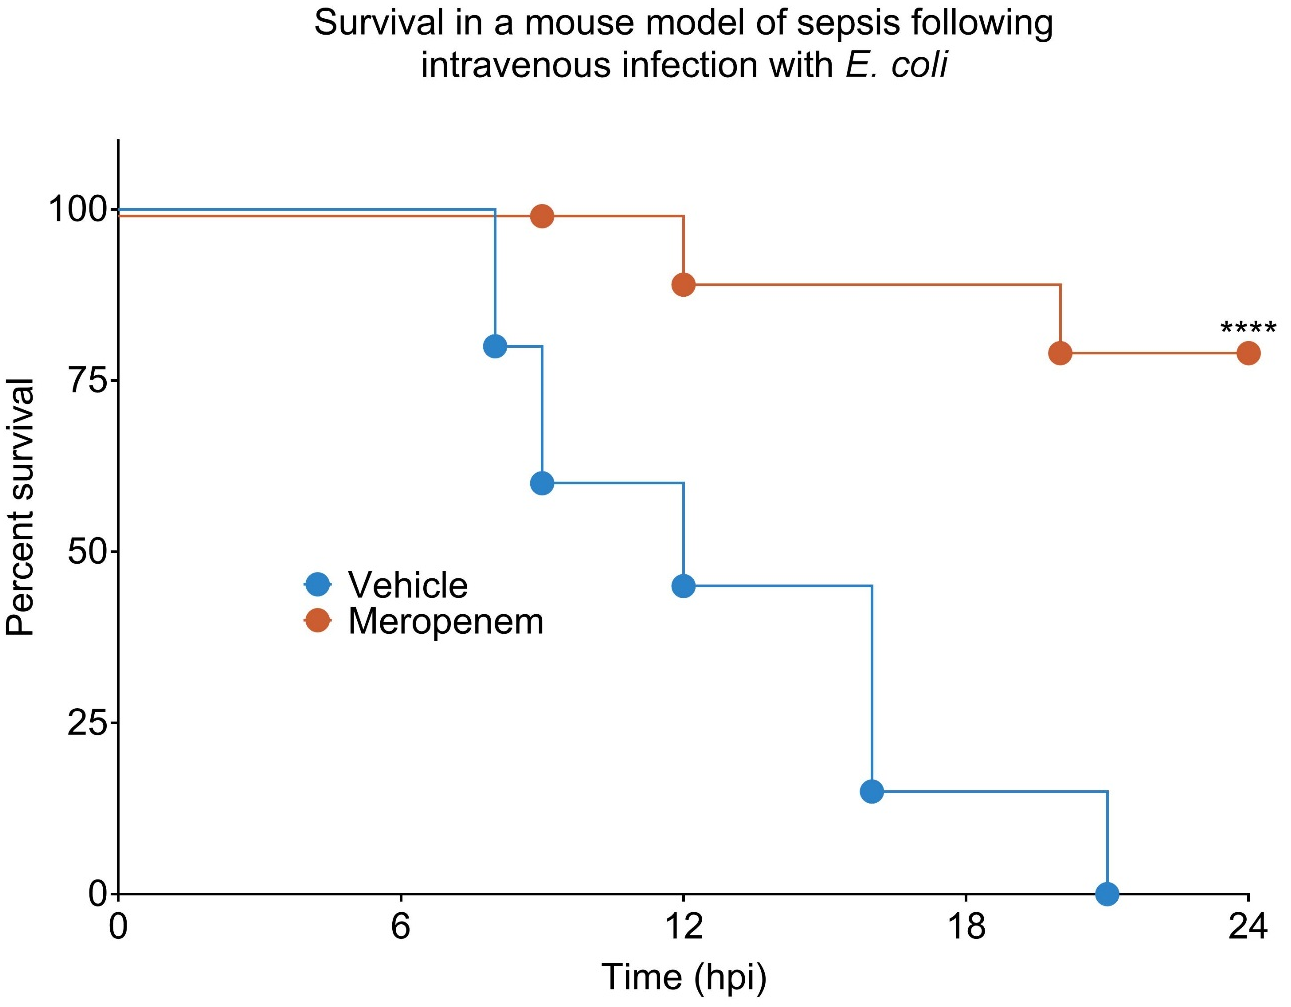 Survival in a mouse model of sepsis following intravenous infection with E. coli